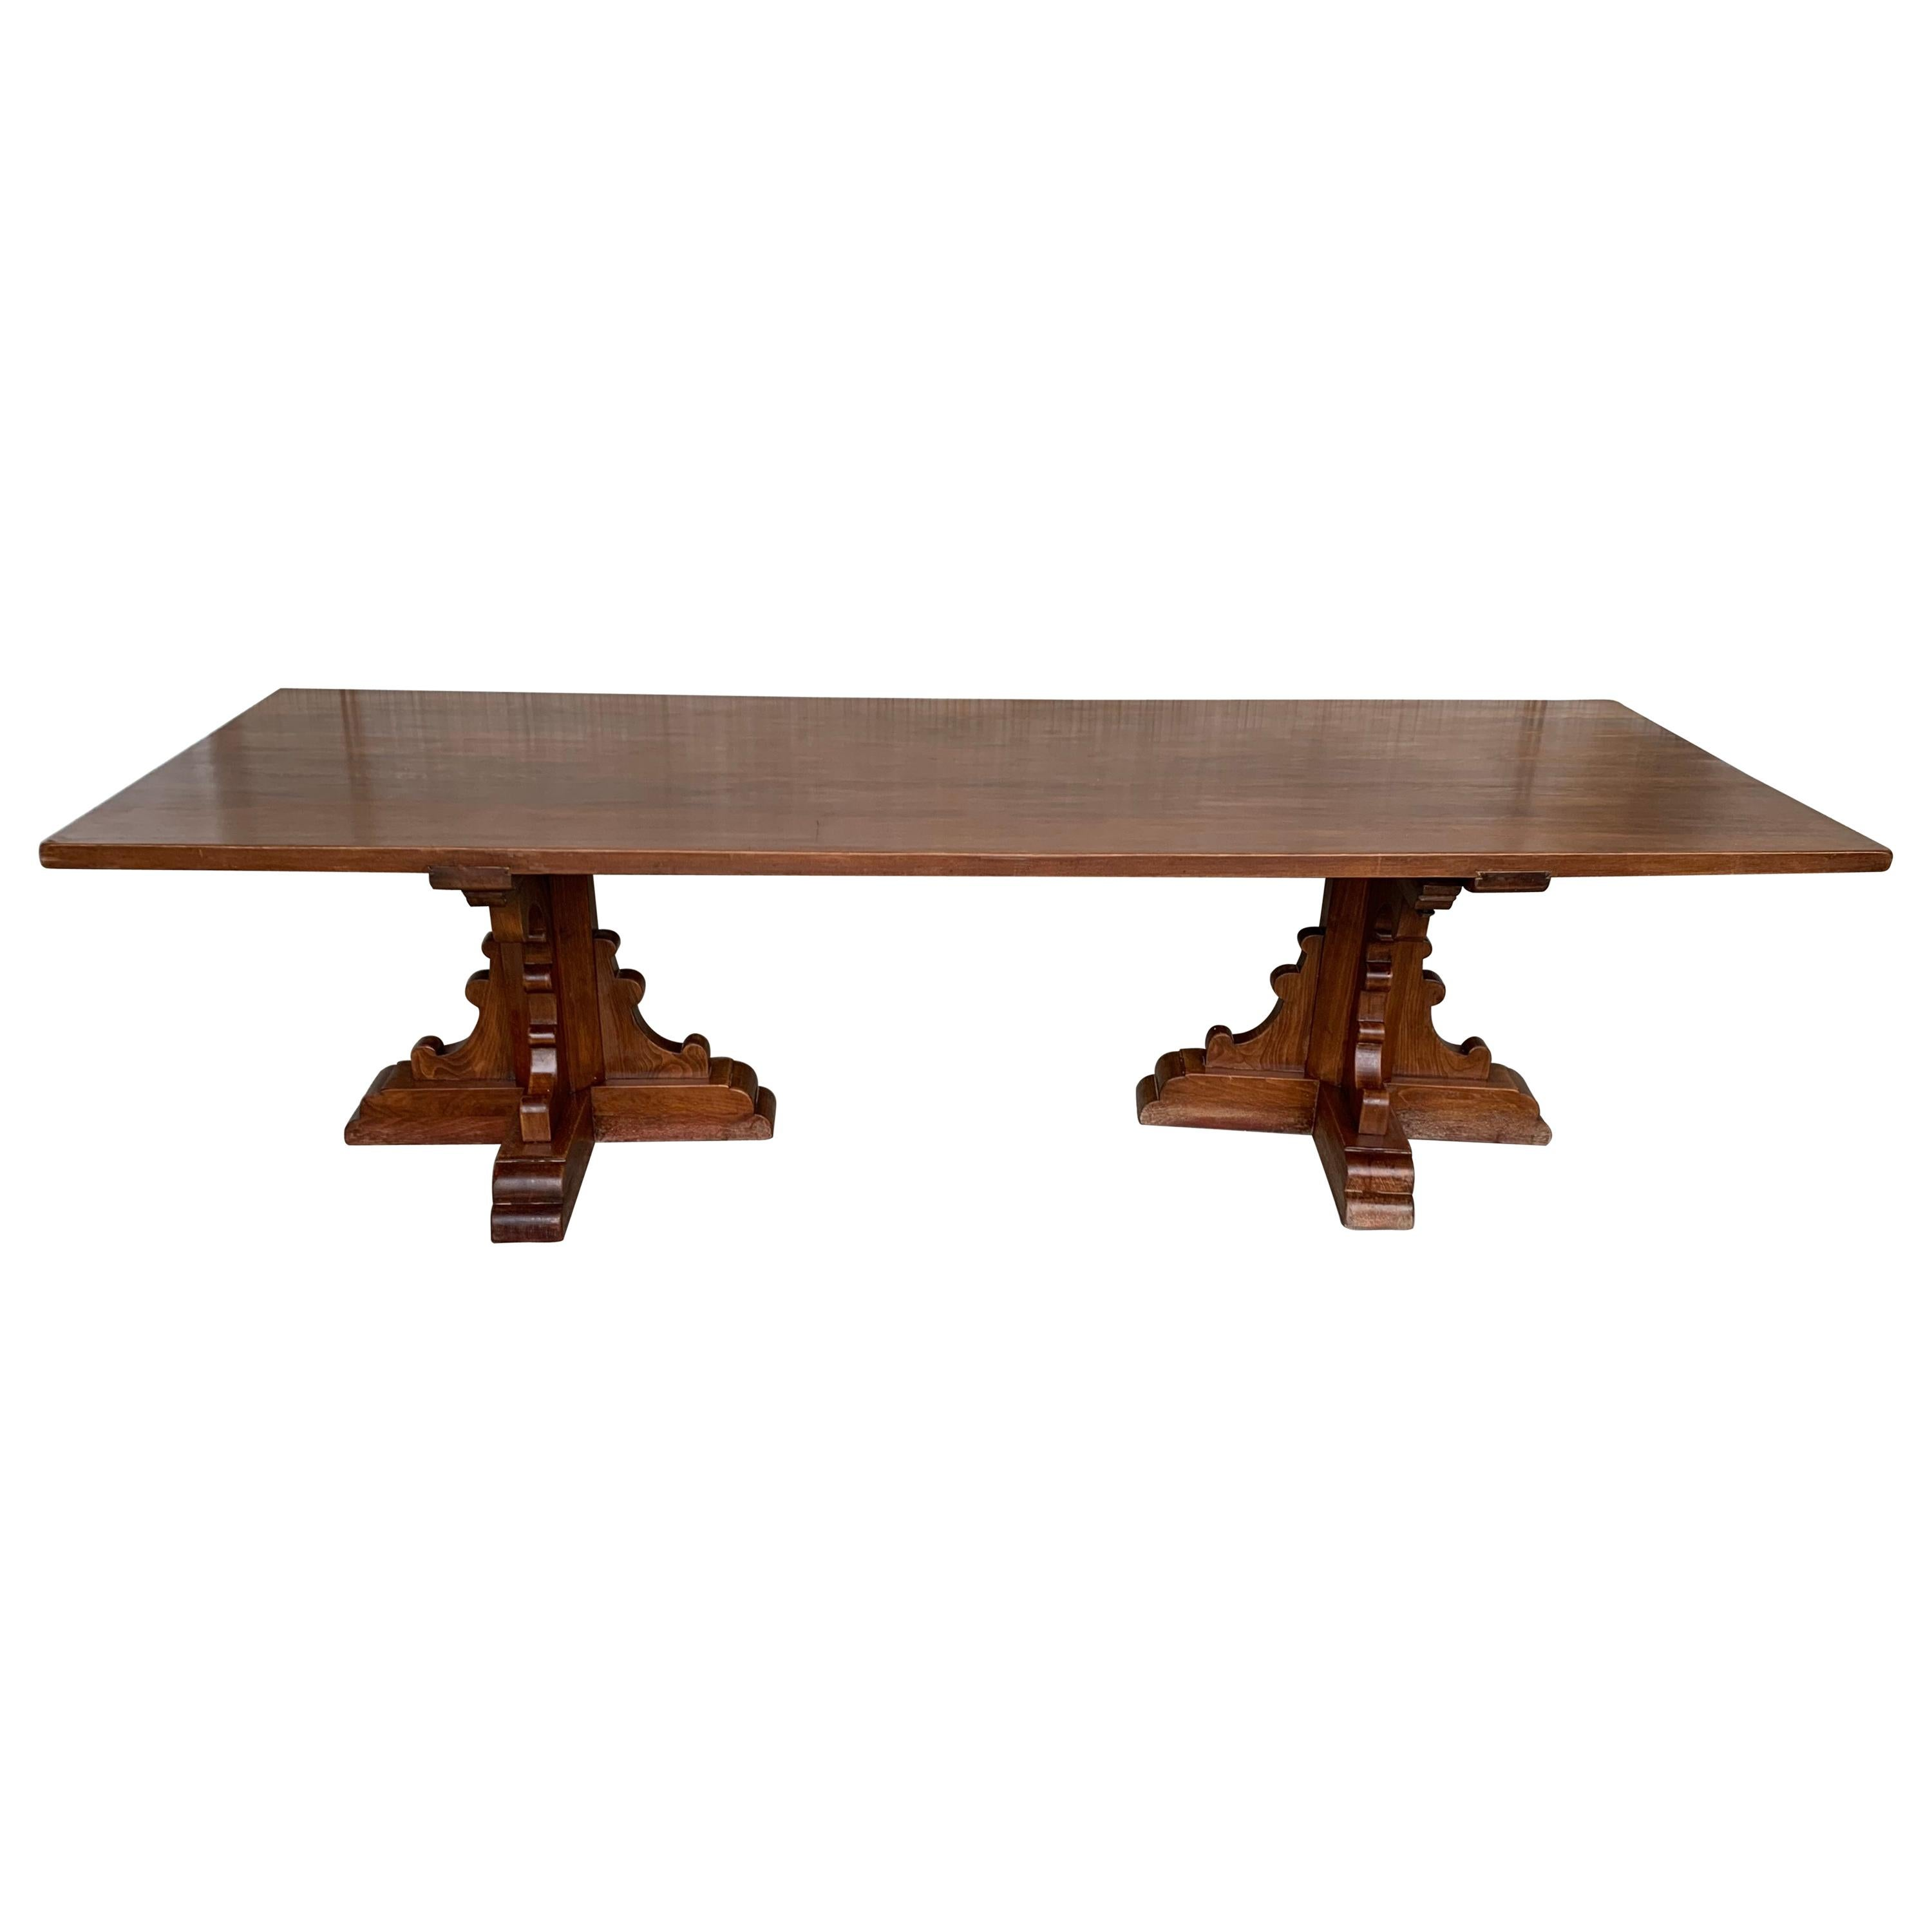 20th Century Large Spanish Walnut Pedestal Dining or Conference Table